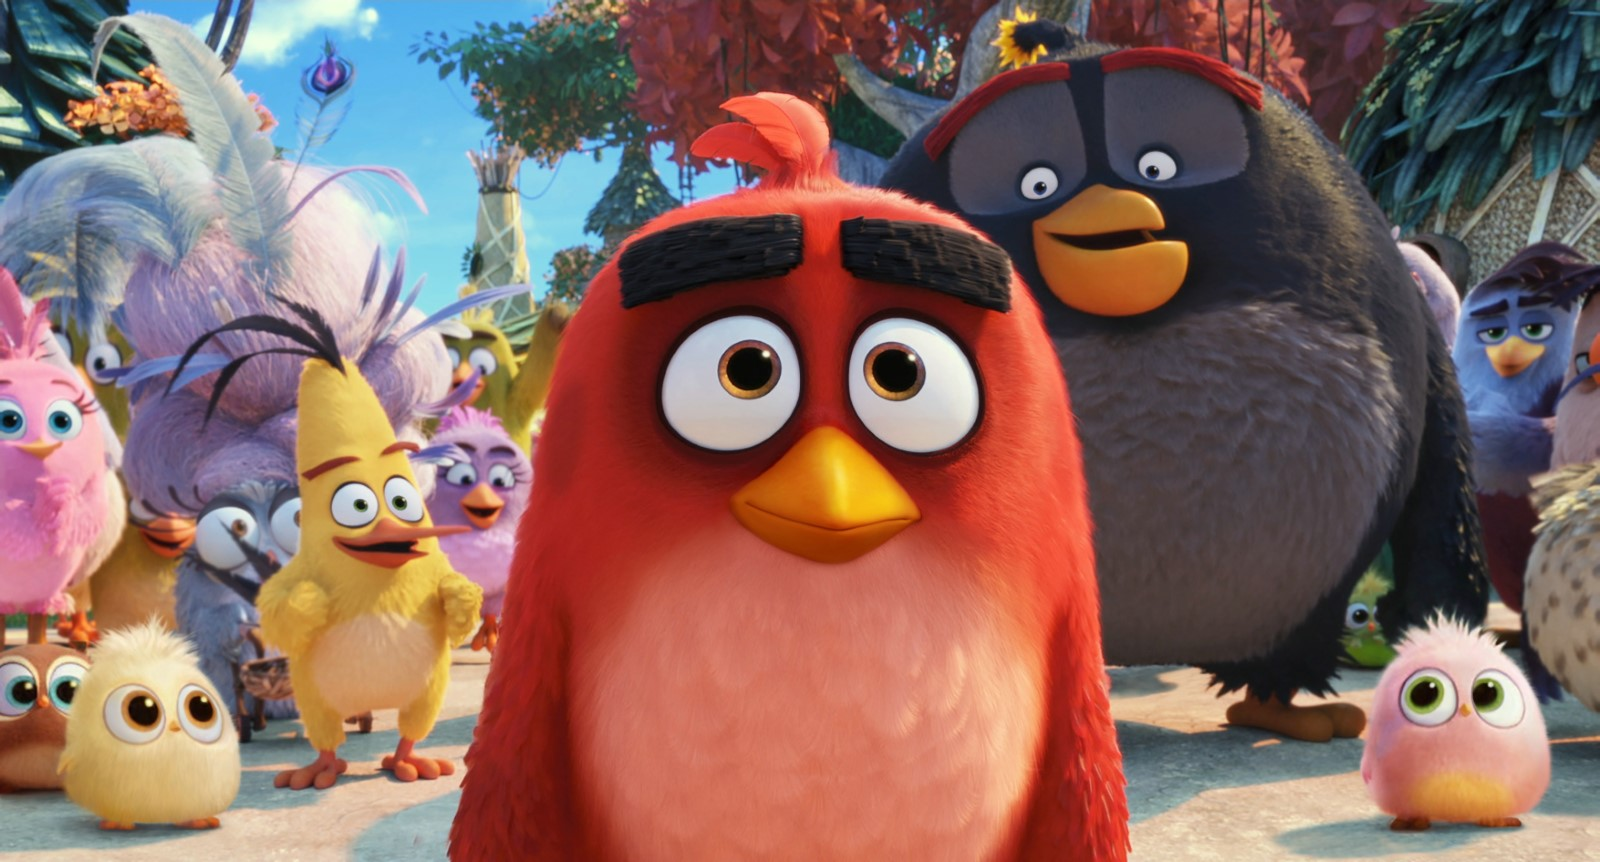 Jason Sudeikis, Danny McBride, and Josh Gad in The Angry Birds Movie 2 (2019)